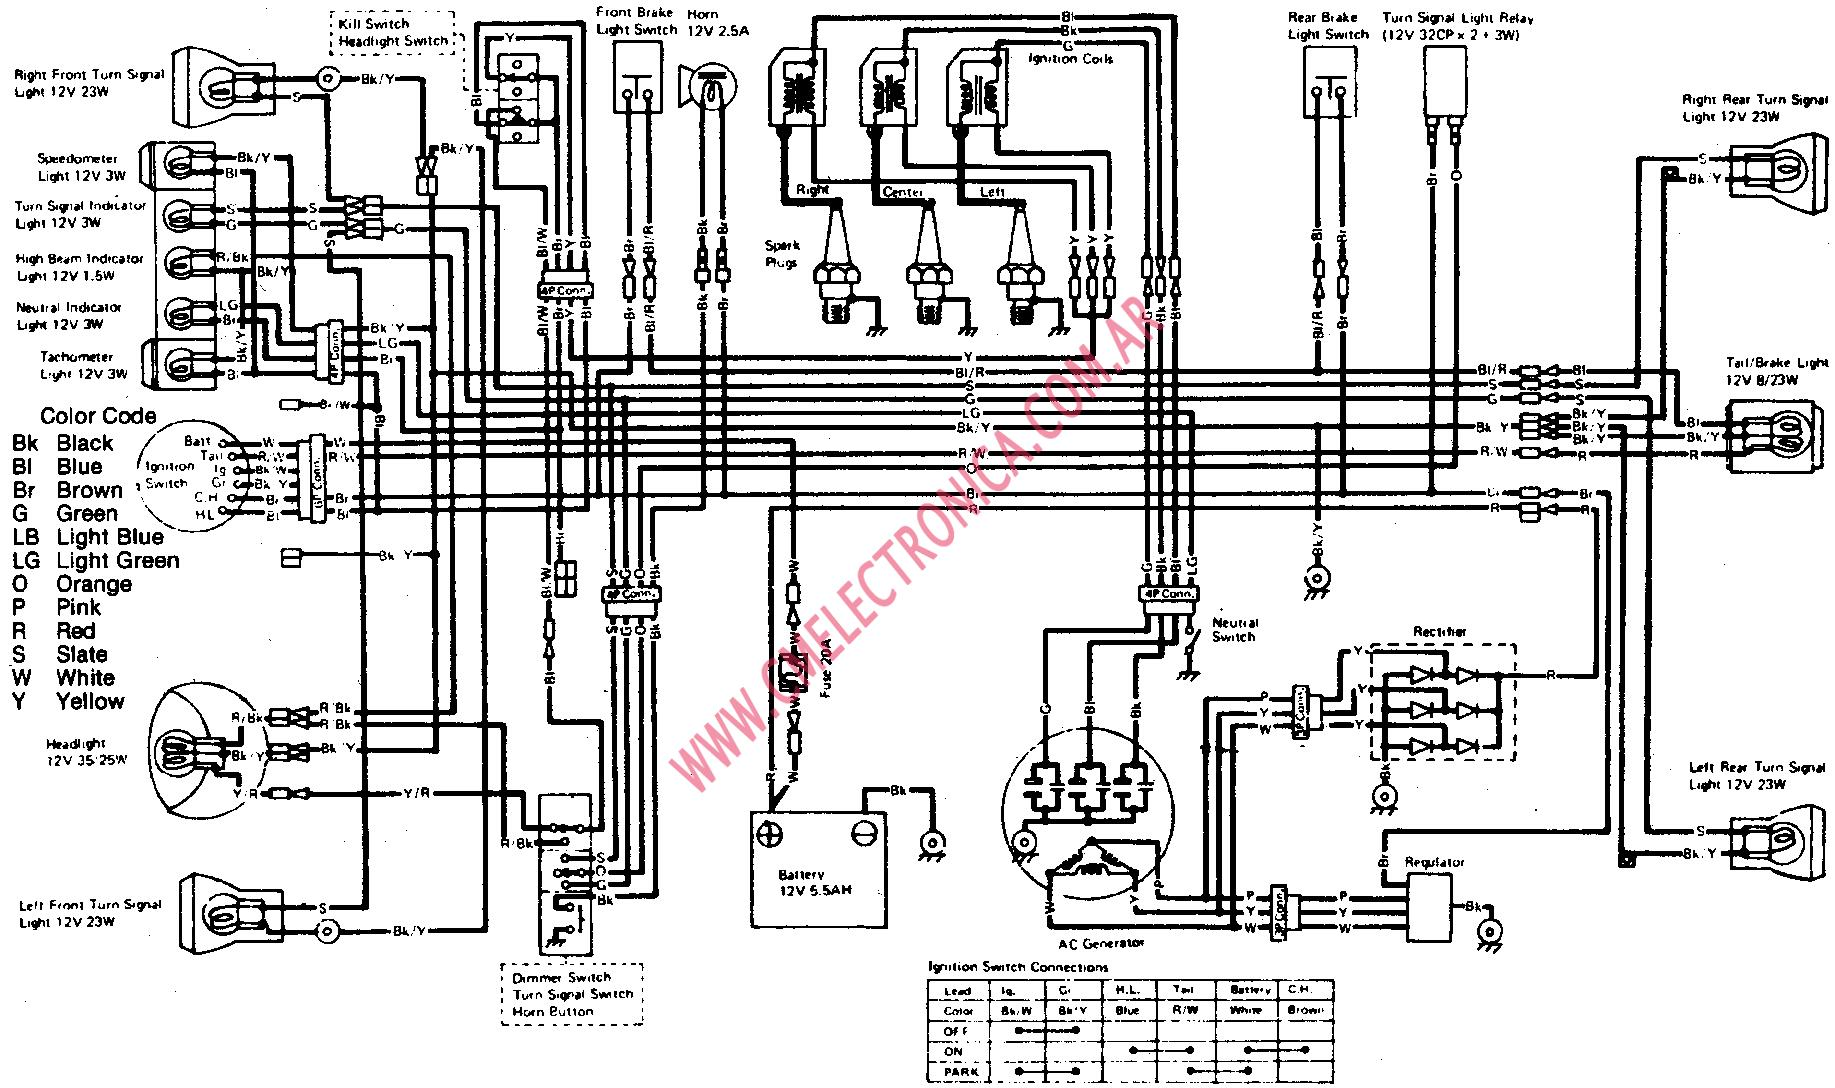 Honda Eb11000 Generator Wiring Diagram furthermore 375969 Vtx 1800 Rod Bearings Replace additionally Honda Trail 70 Clutch Diagram furthermore 187 Honda Wiring Diagram Section in addition 1985 Honda Shadow Wiring Diagram. on wiring diagram for honda vtx 1300